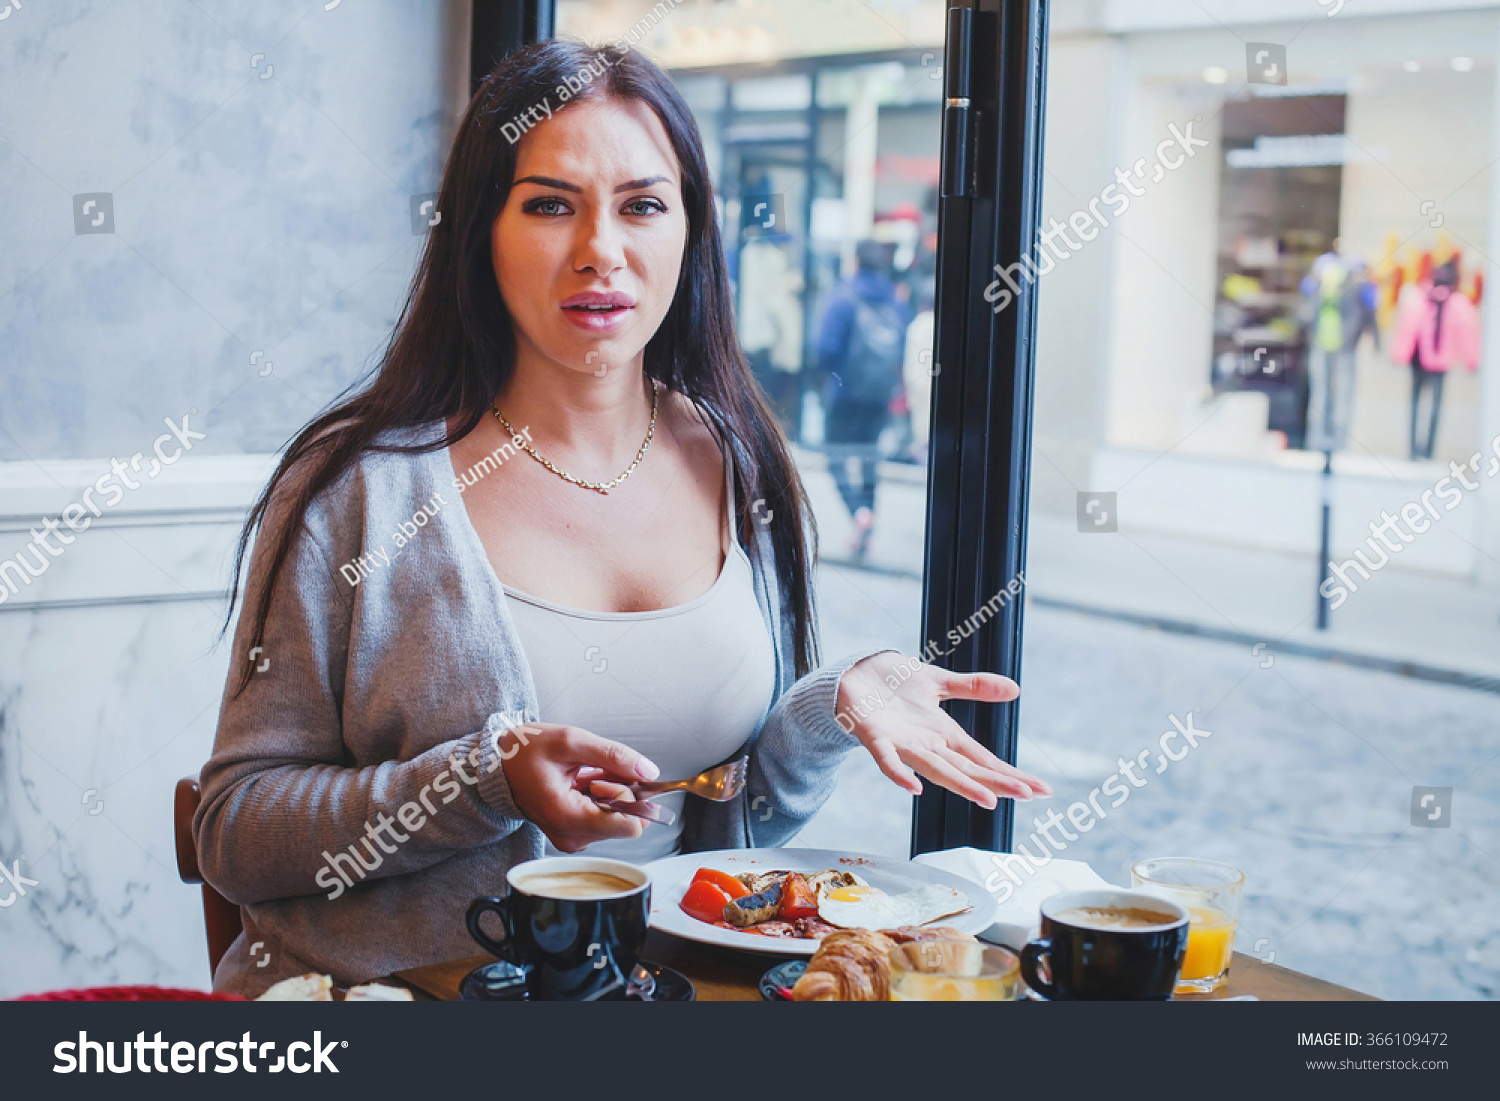 unhappy customer restaurant angry woman complaining stock photo 366109472 shutterstock. Black Bedroom Furniture Sets. Home Design Ideas